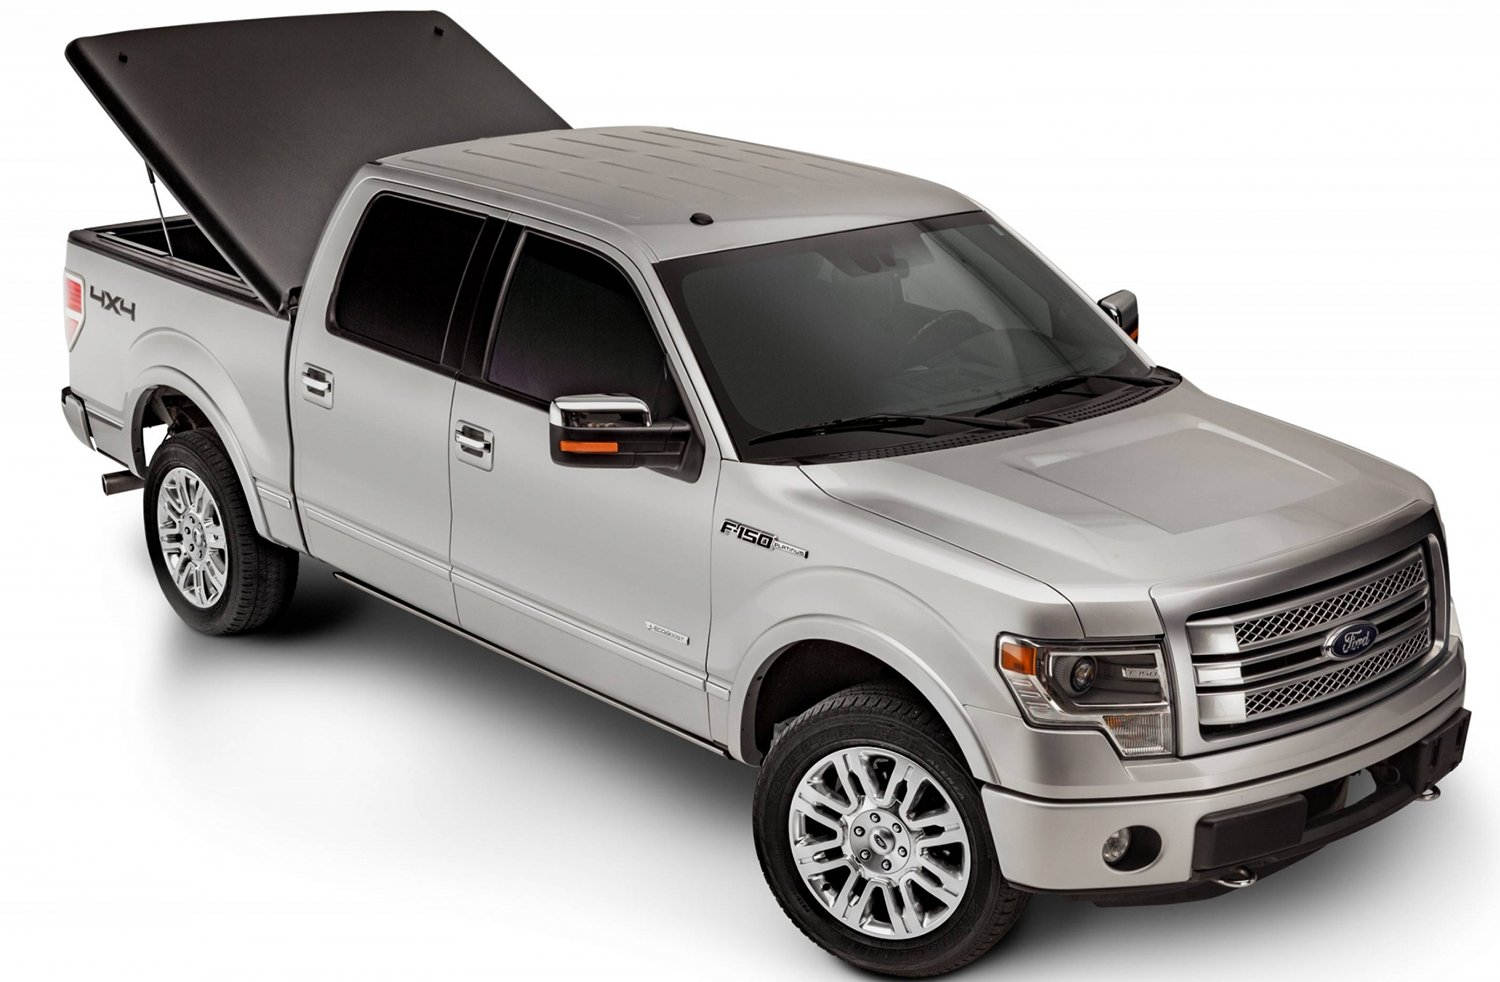 undercover xl on se make racing at overview orders ucv parts over model bed lux summit covers gp sierra cover gmc free tonneau shipping